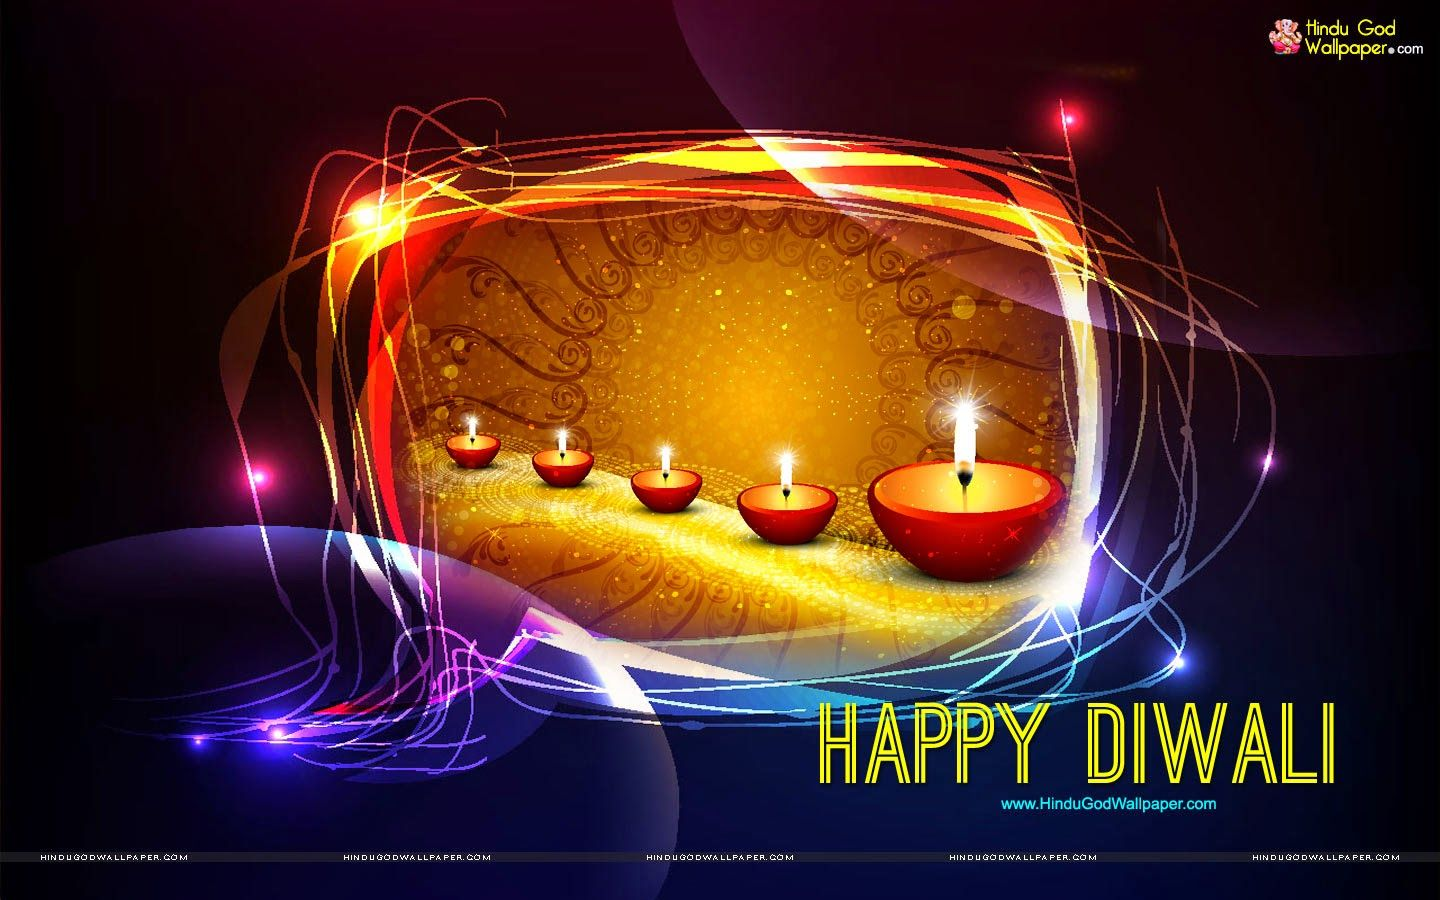 Download Diwali Hd Wallpapers 2016: Happy Diwali Image 2016 Free Download Beautiful HD